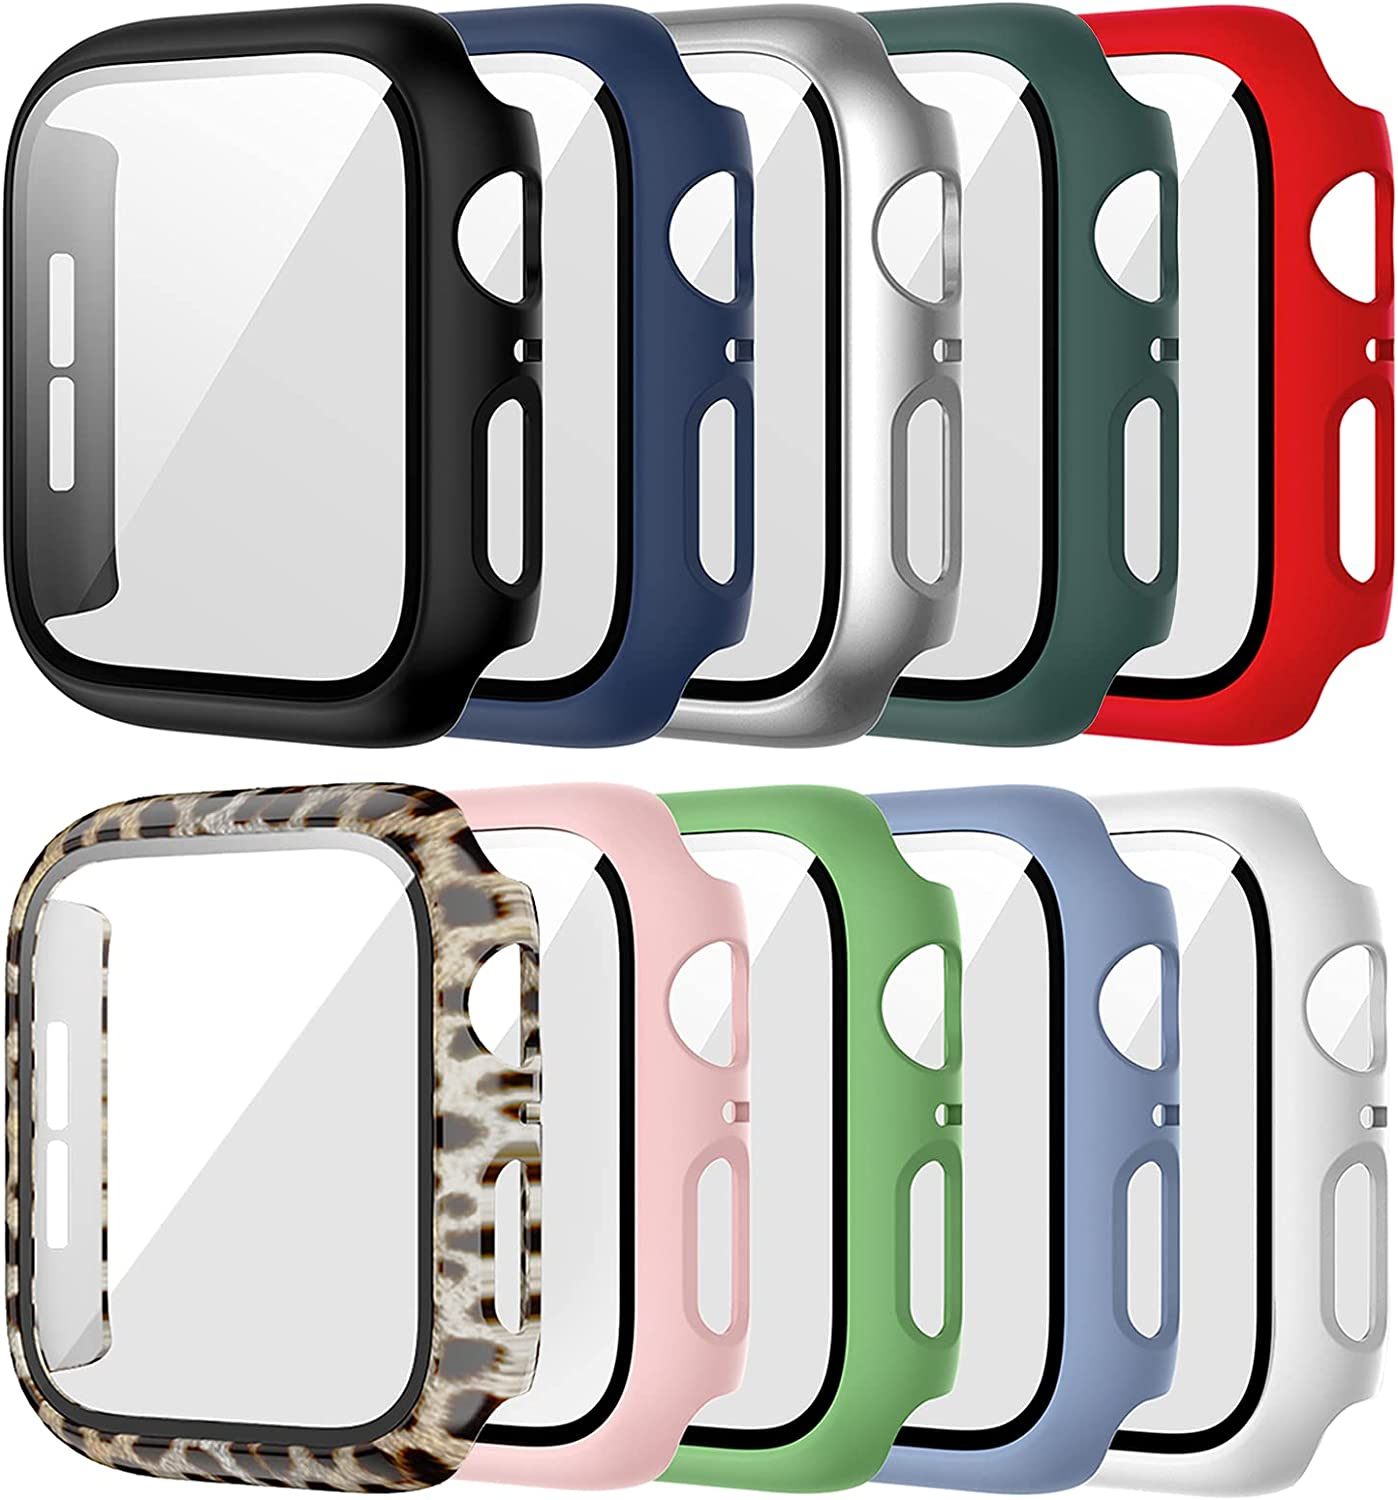 10 Pack Case for Apple Watch 44mm Series 6 5 4 SE with Tempered Glass Screen Protector, Haojavo Full Hard Ultra-Thin Scratch Resistant Bumper Leopard Protective Cover for iWatch Accessories